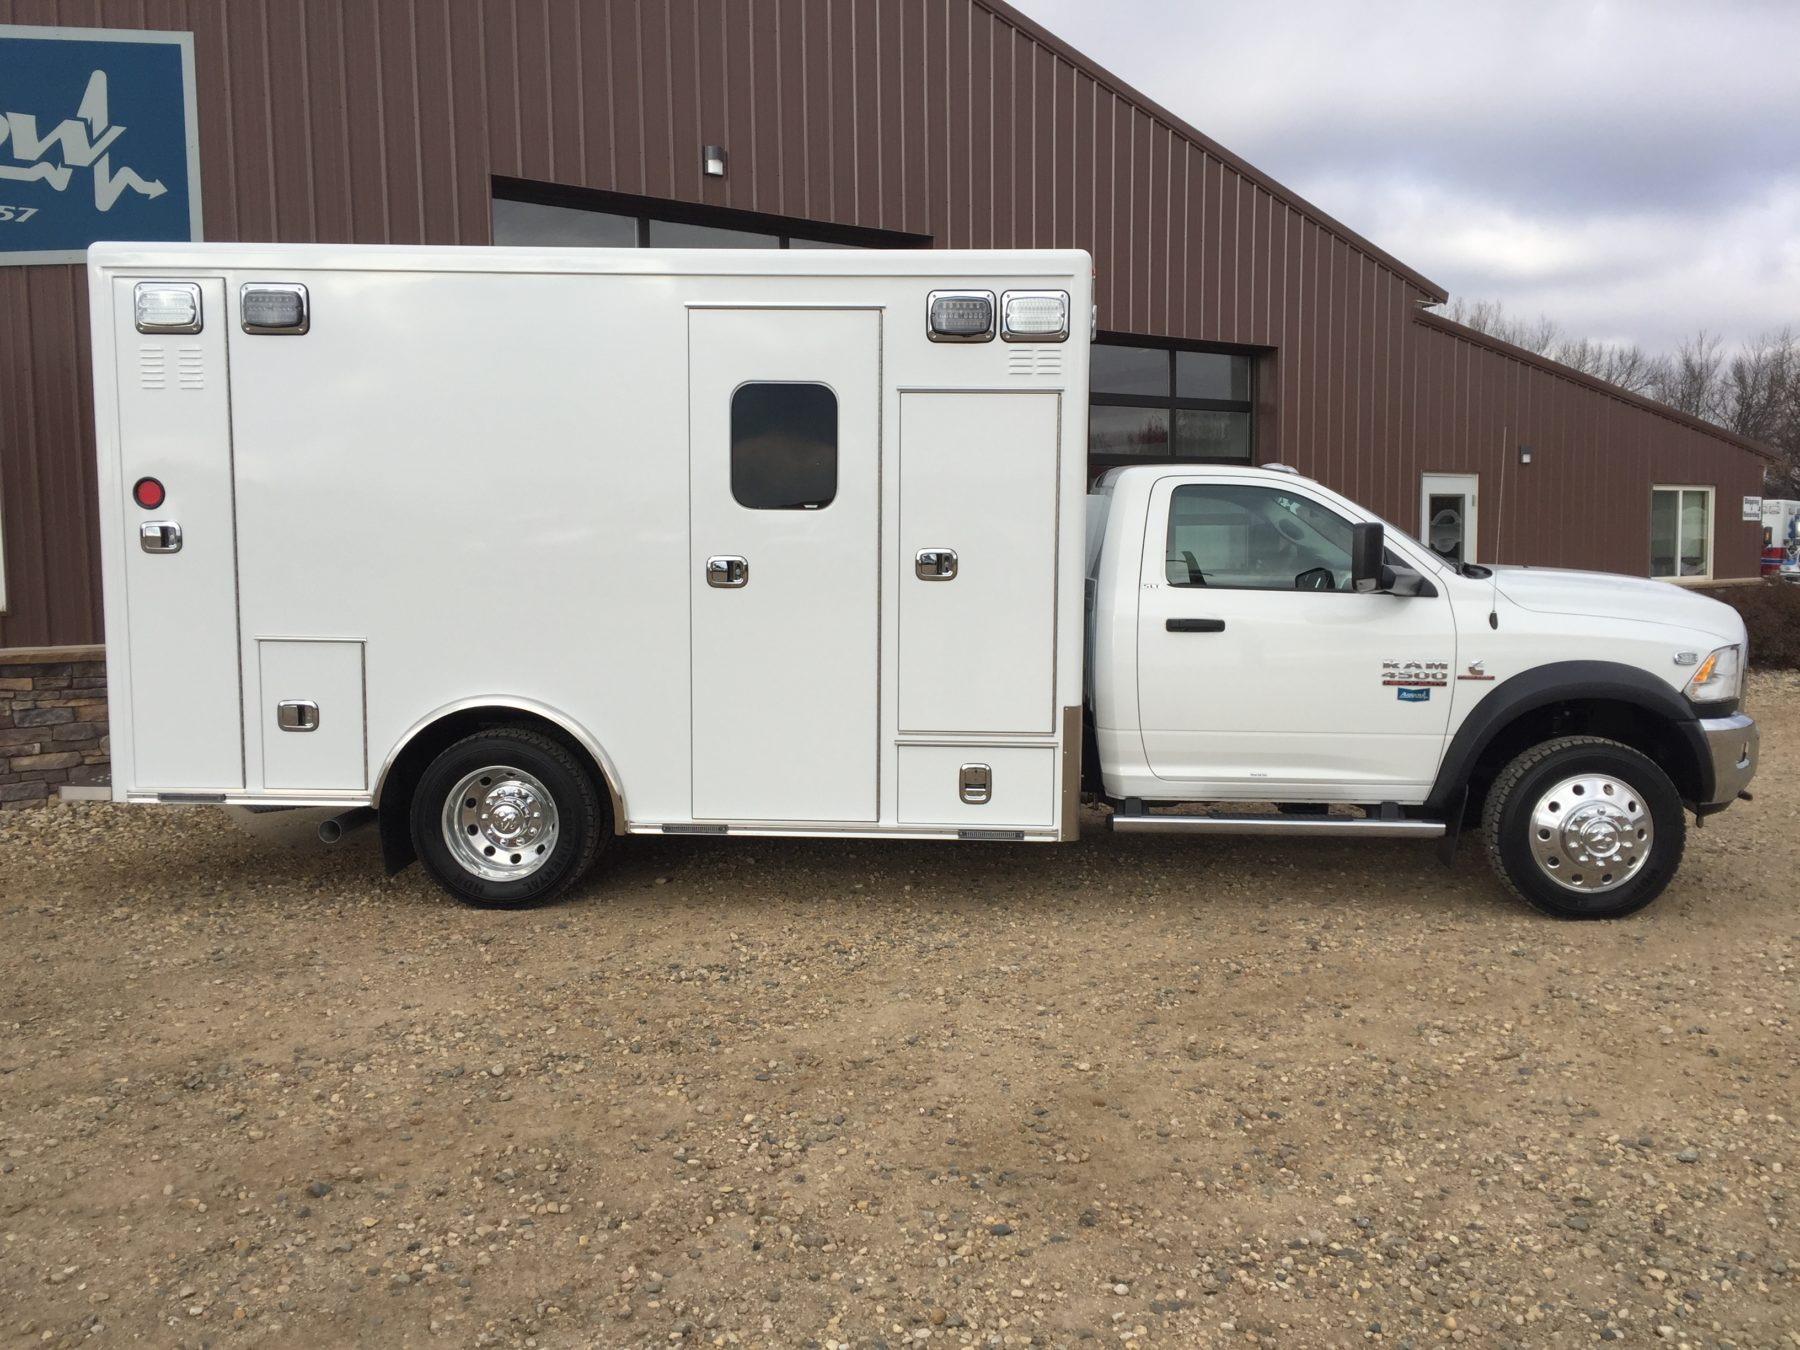 2017 Ram 4500 4x4 Heavy Duty Ambulance For Sale – Picture 4